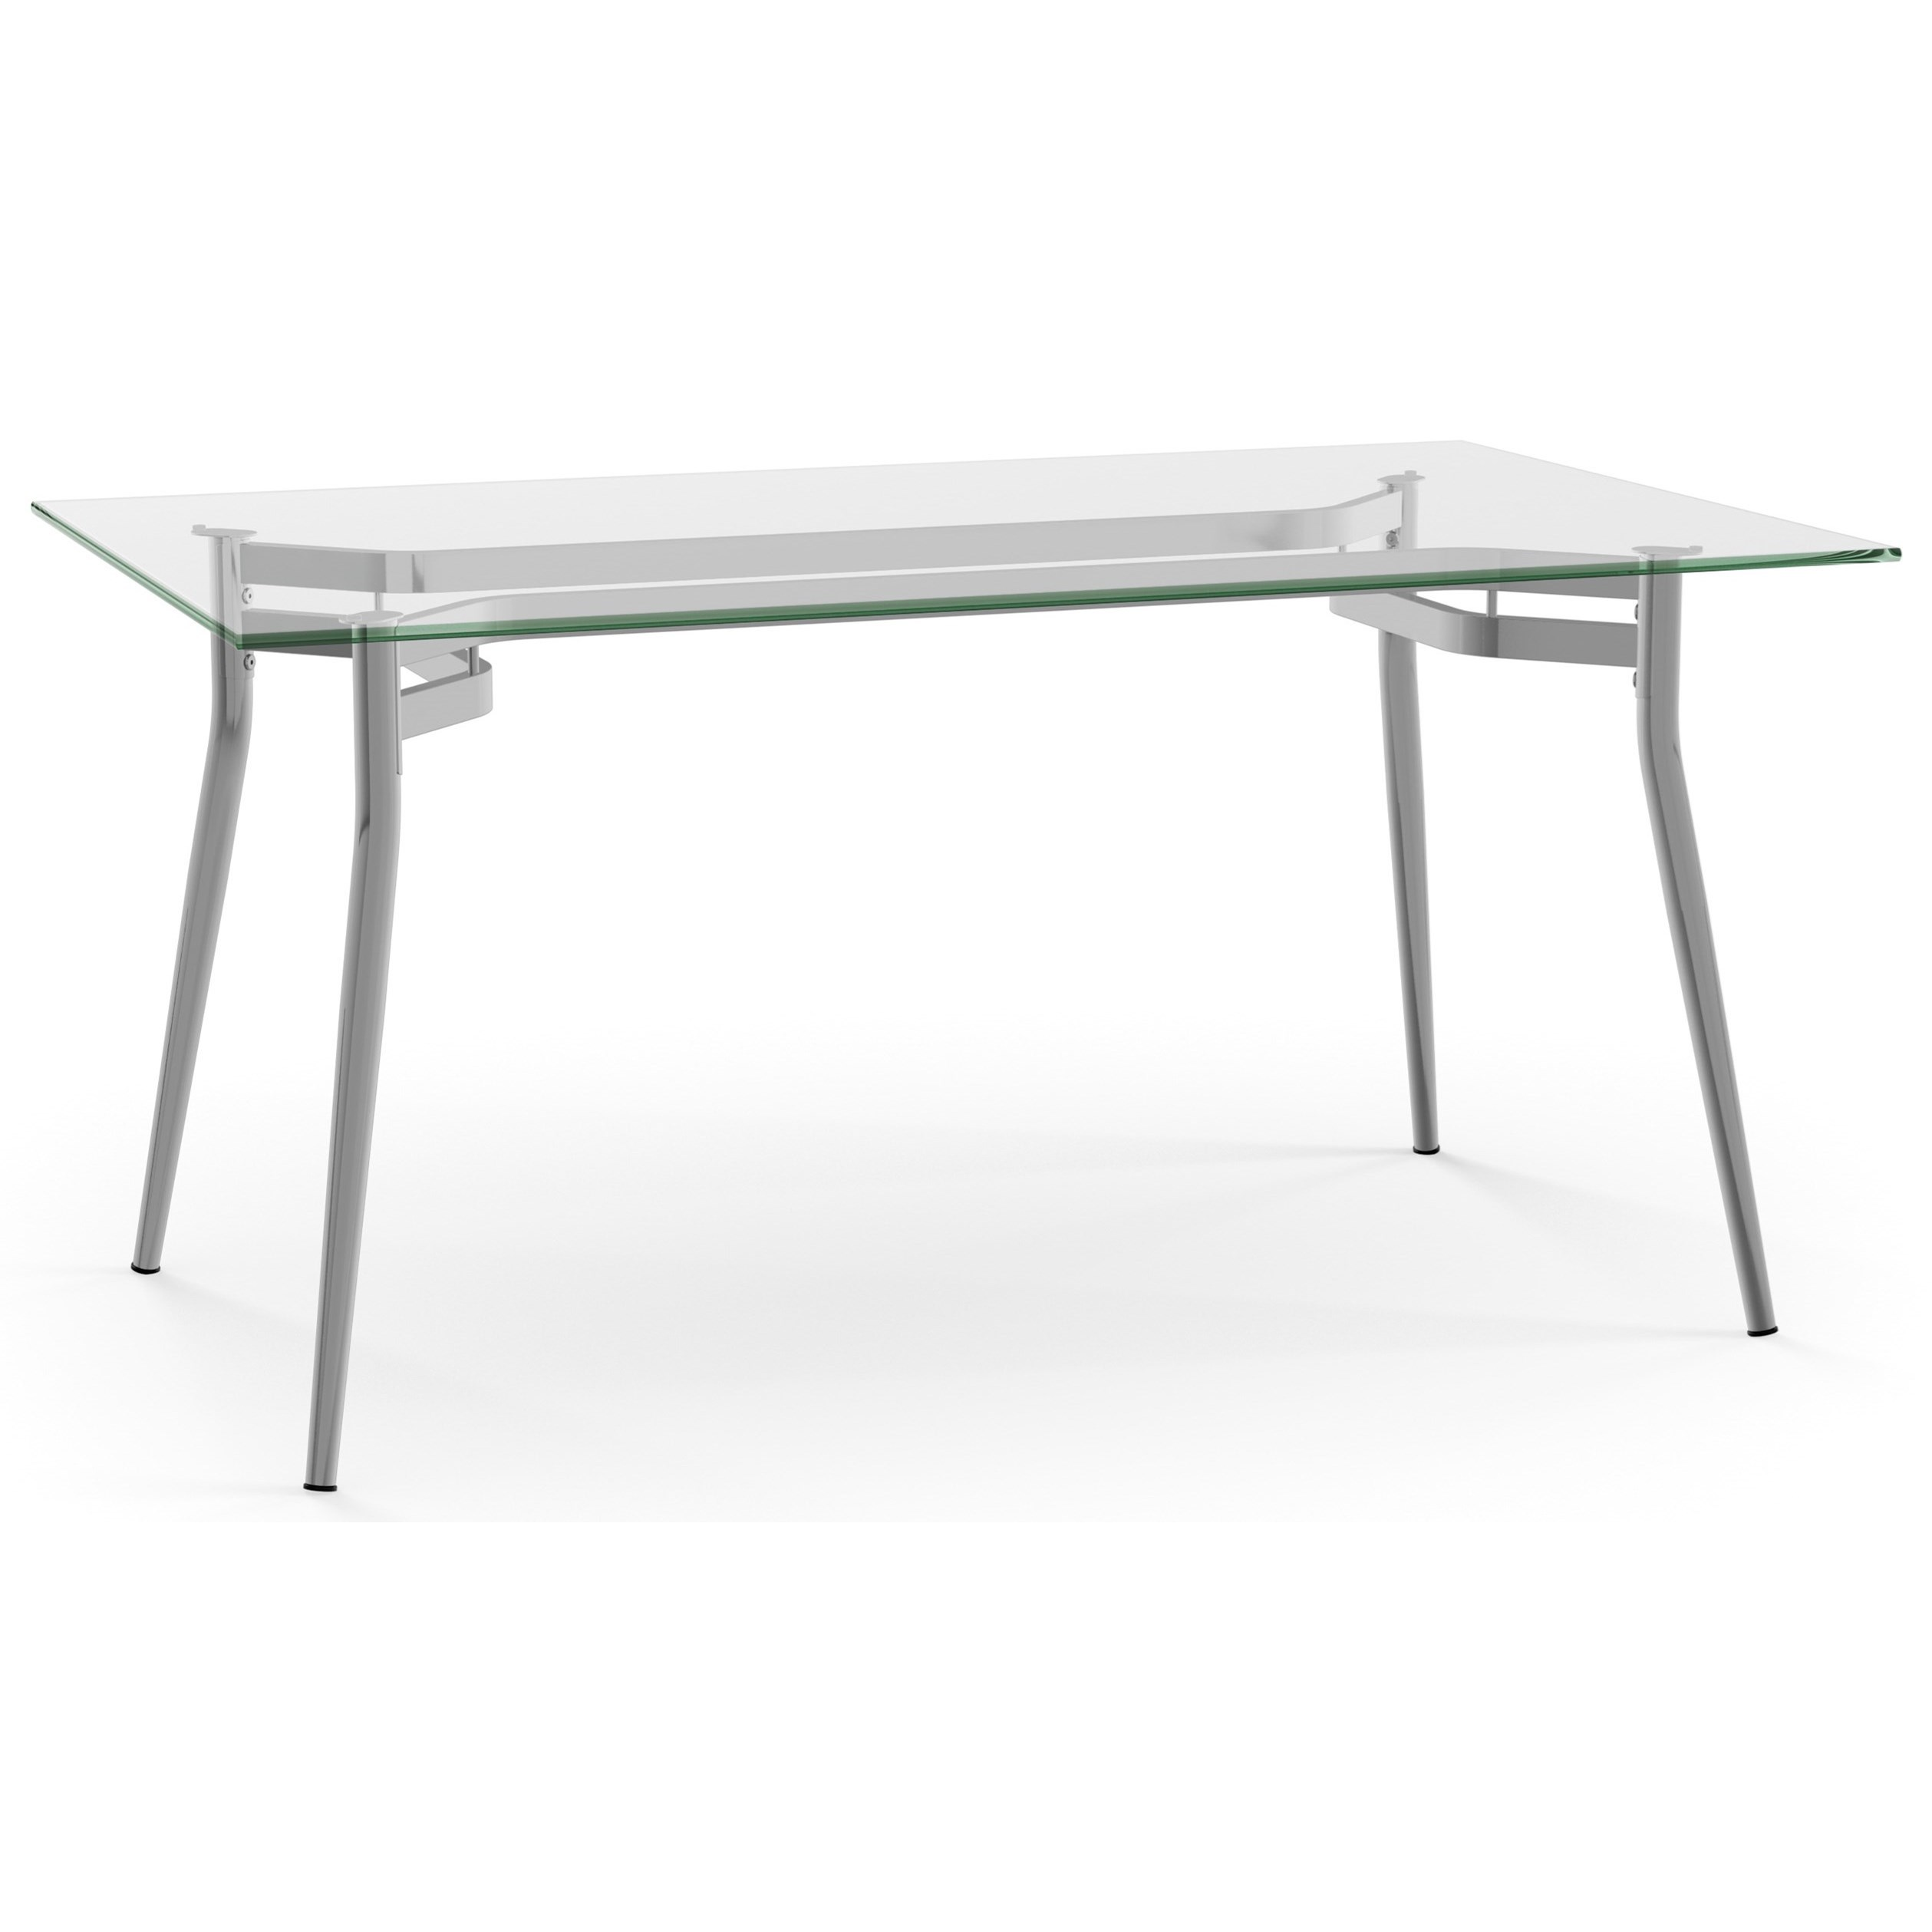 Urban Alys Table with Glass Top by Amisco at Rooms and Rest